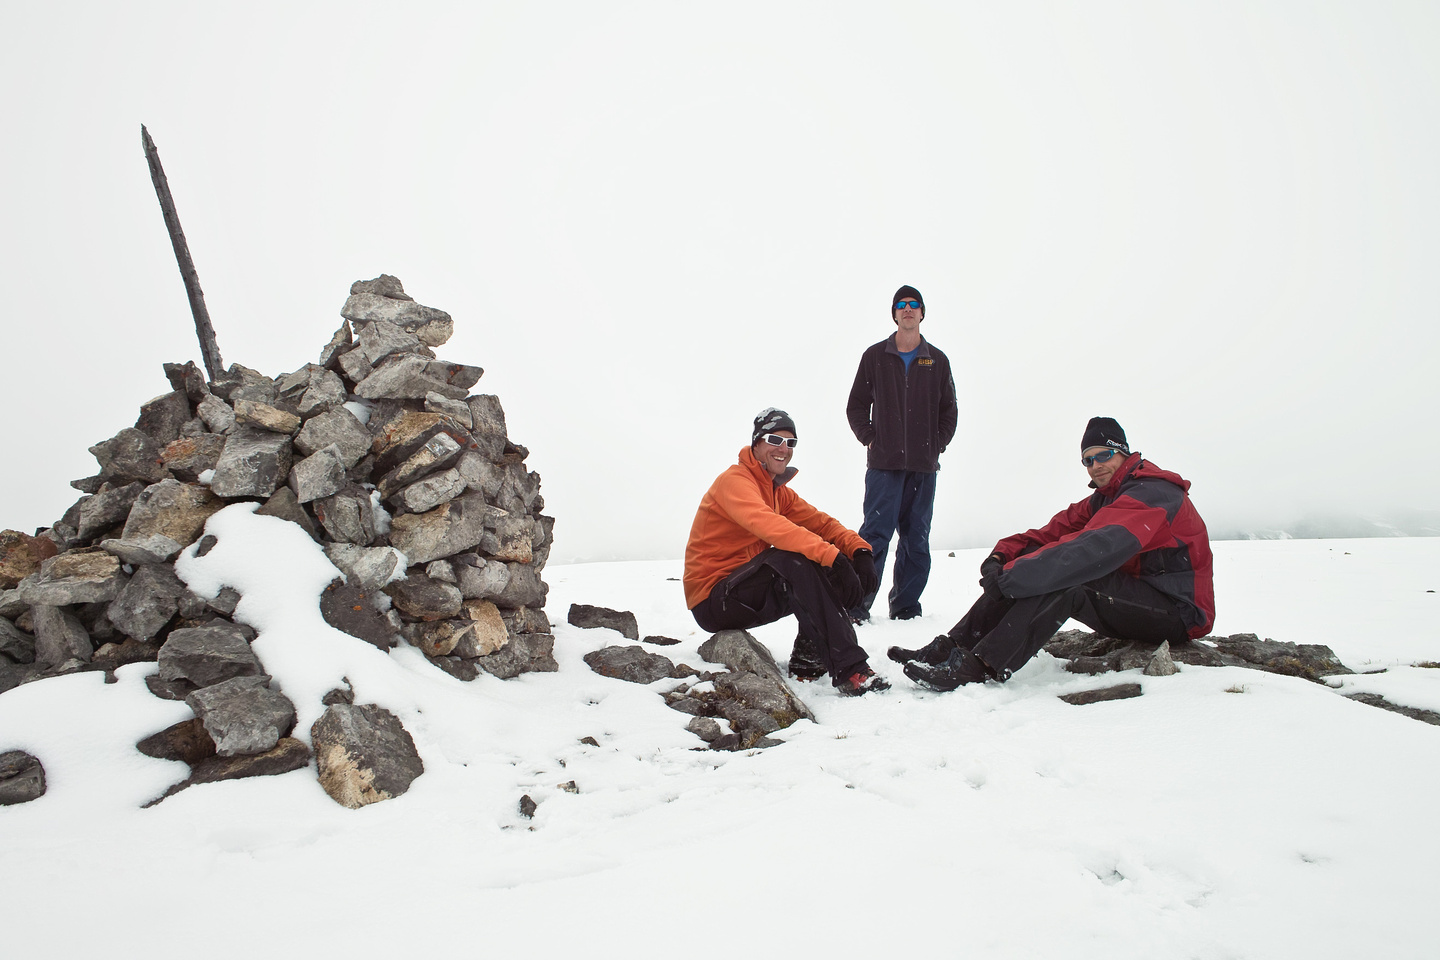 The boys back at the main cairn.